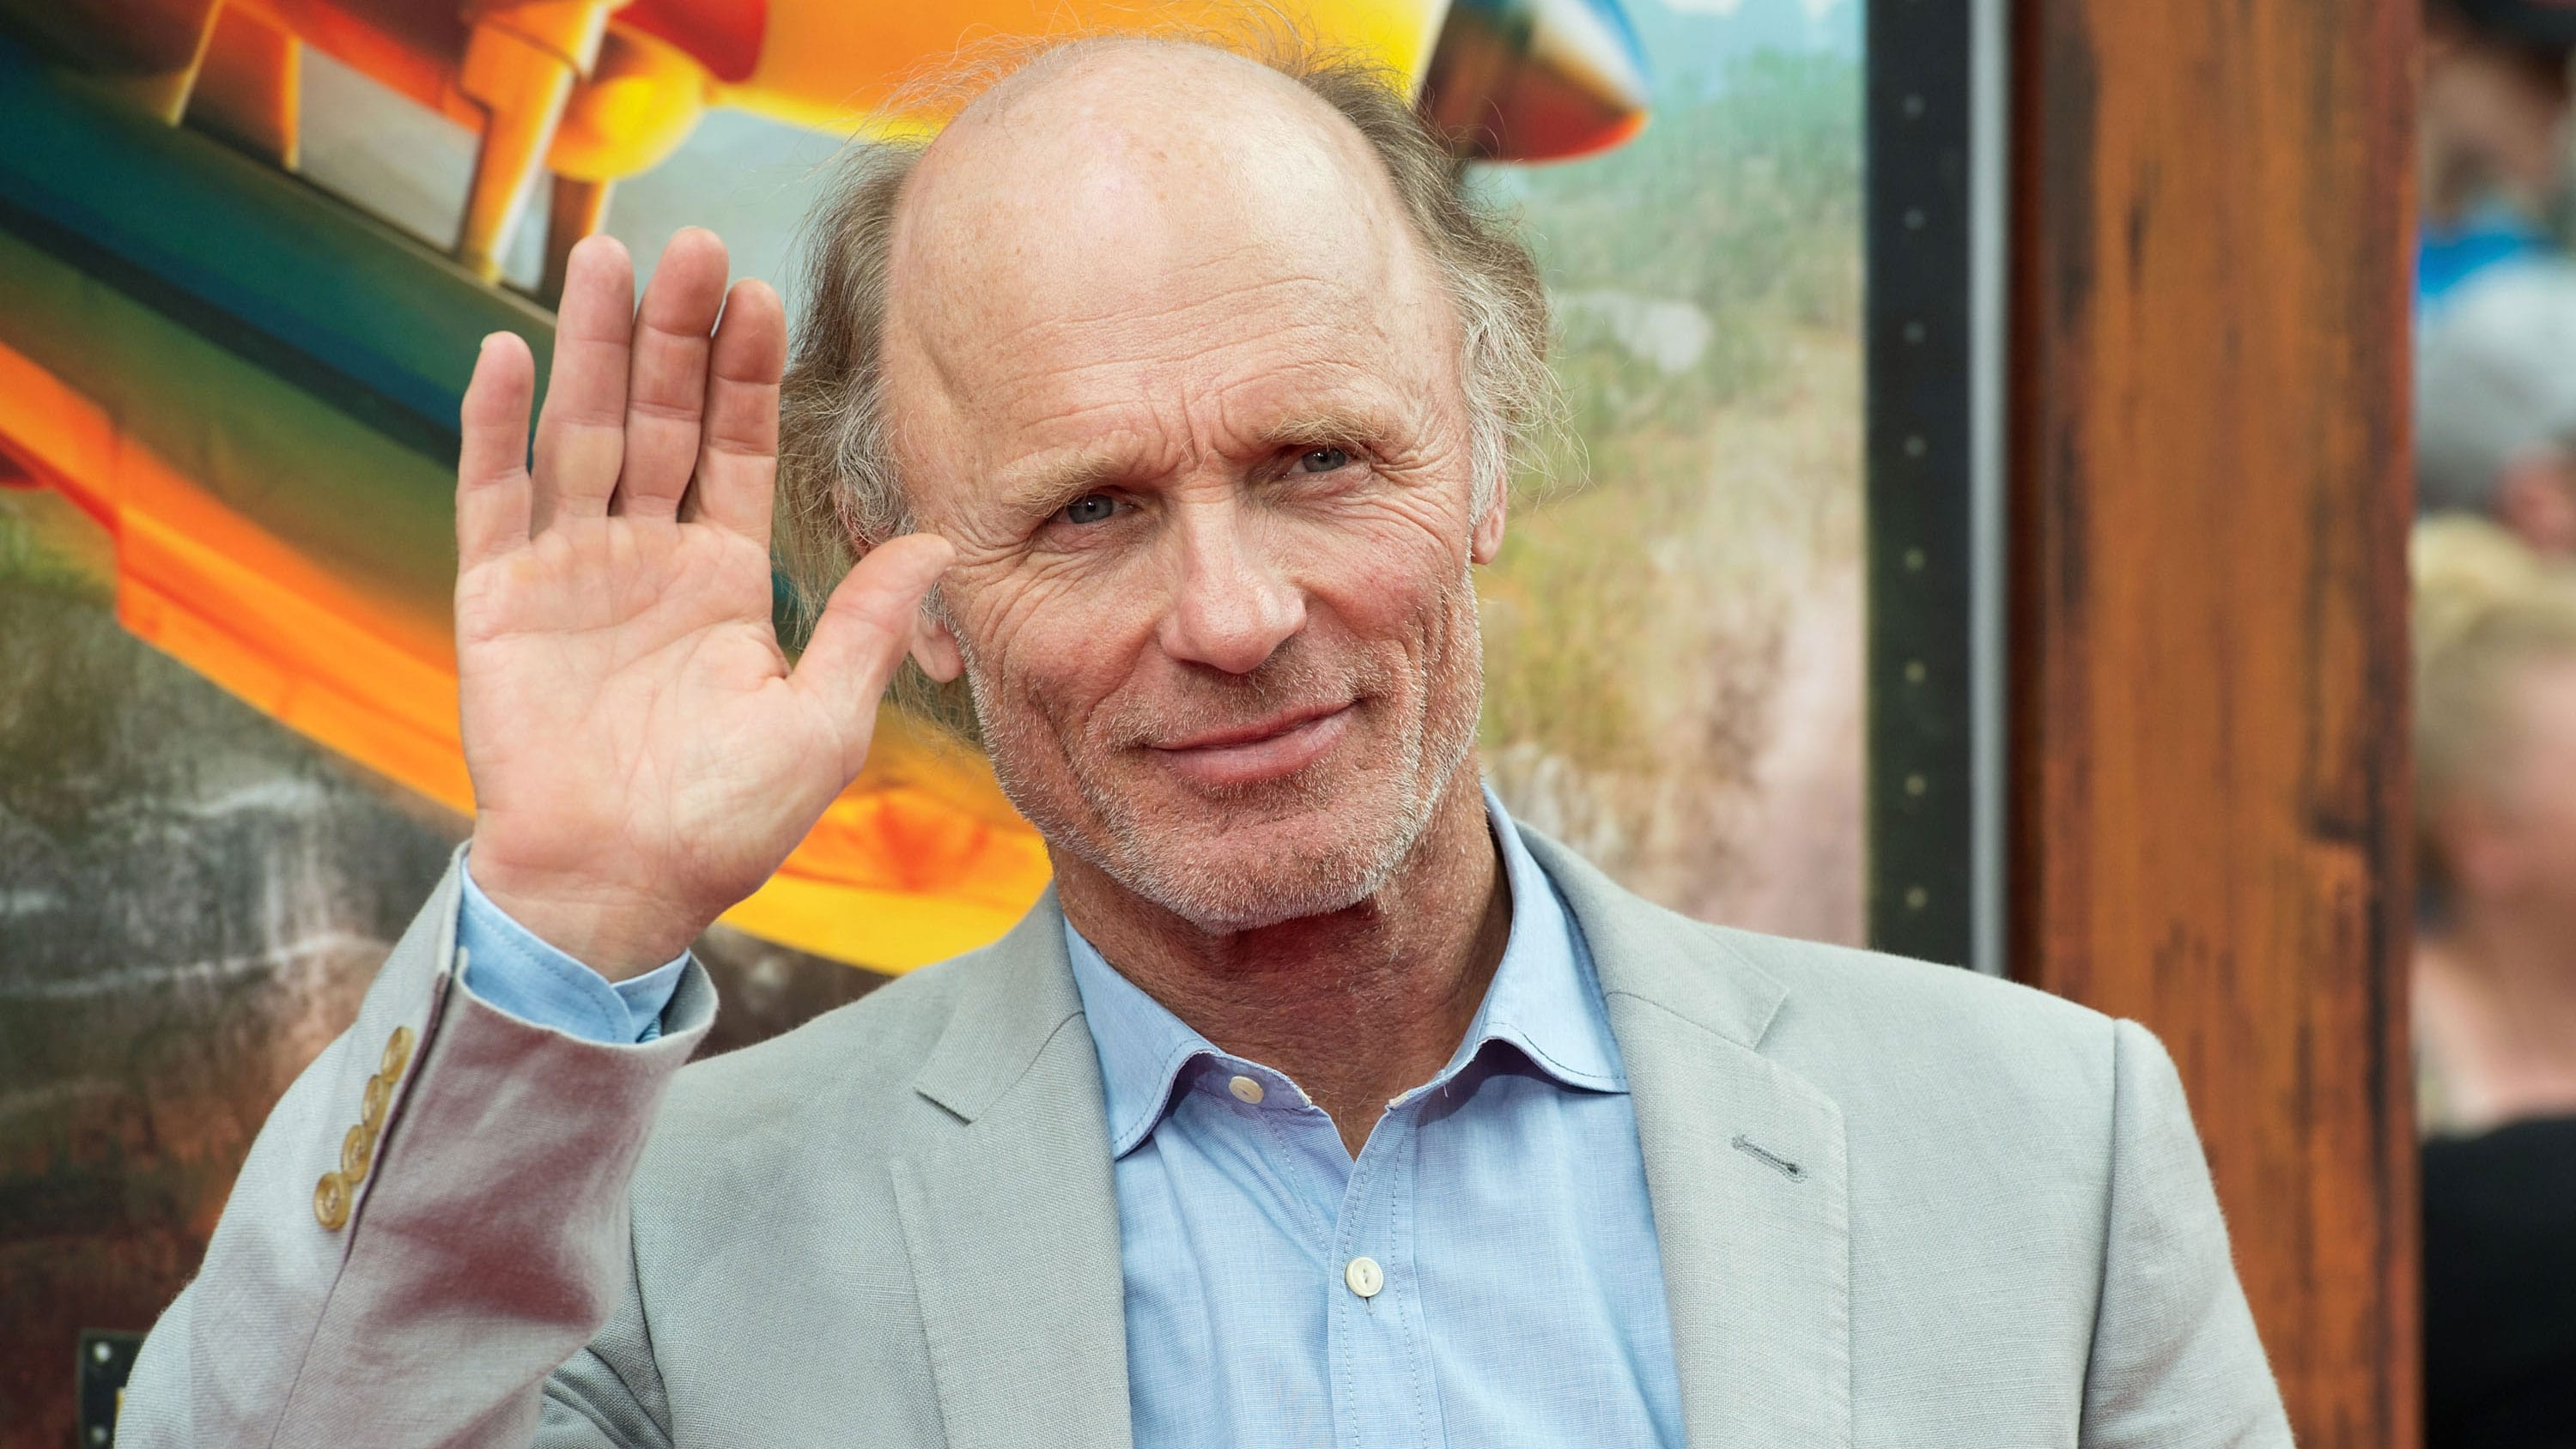 Ed Harris Widescreen for desktop